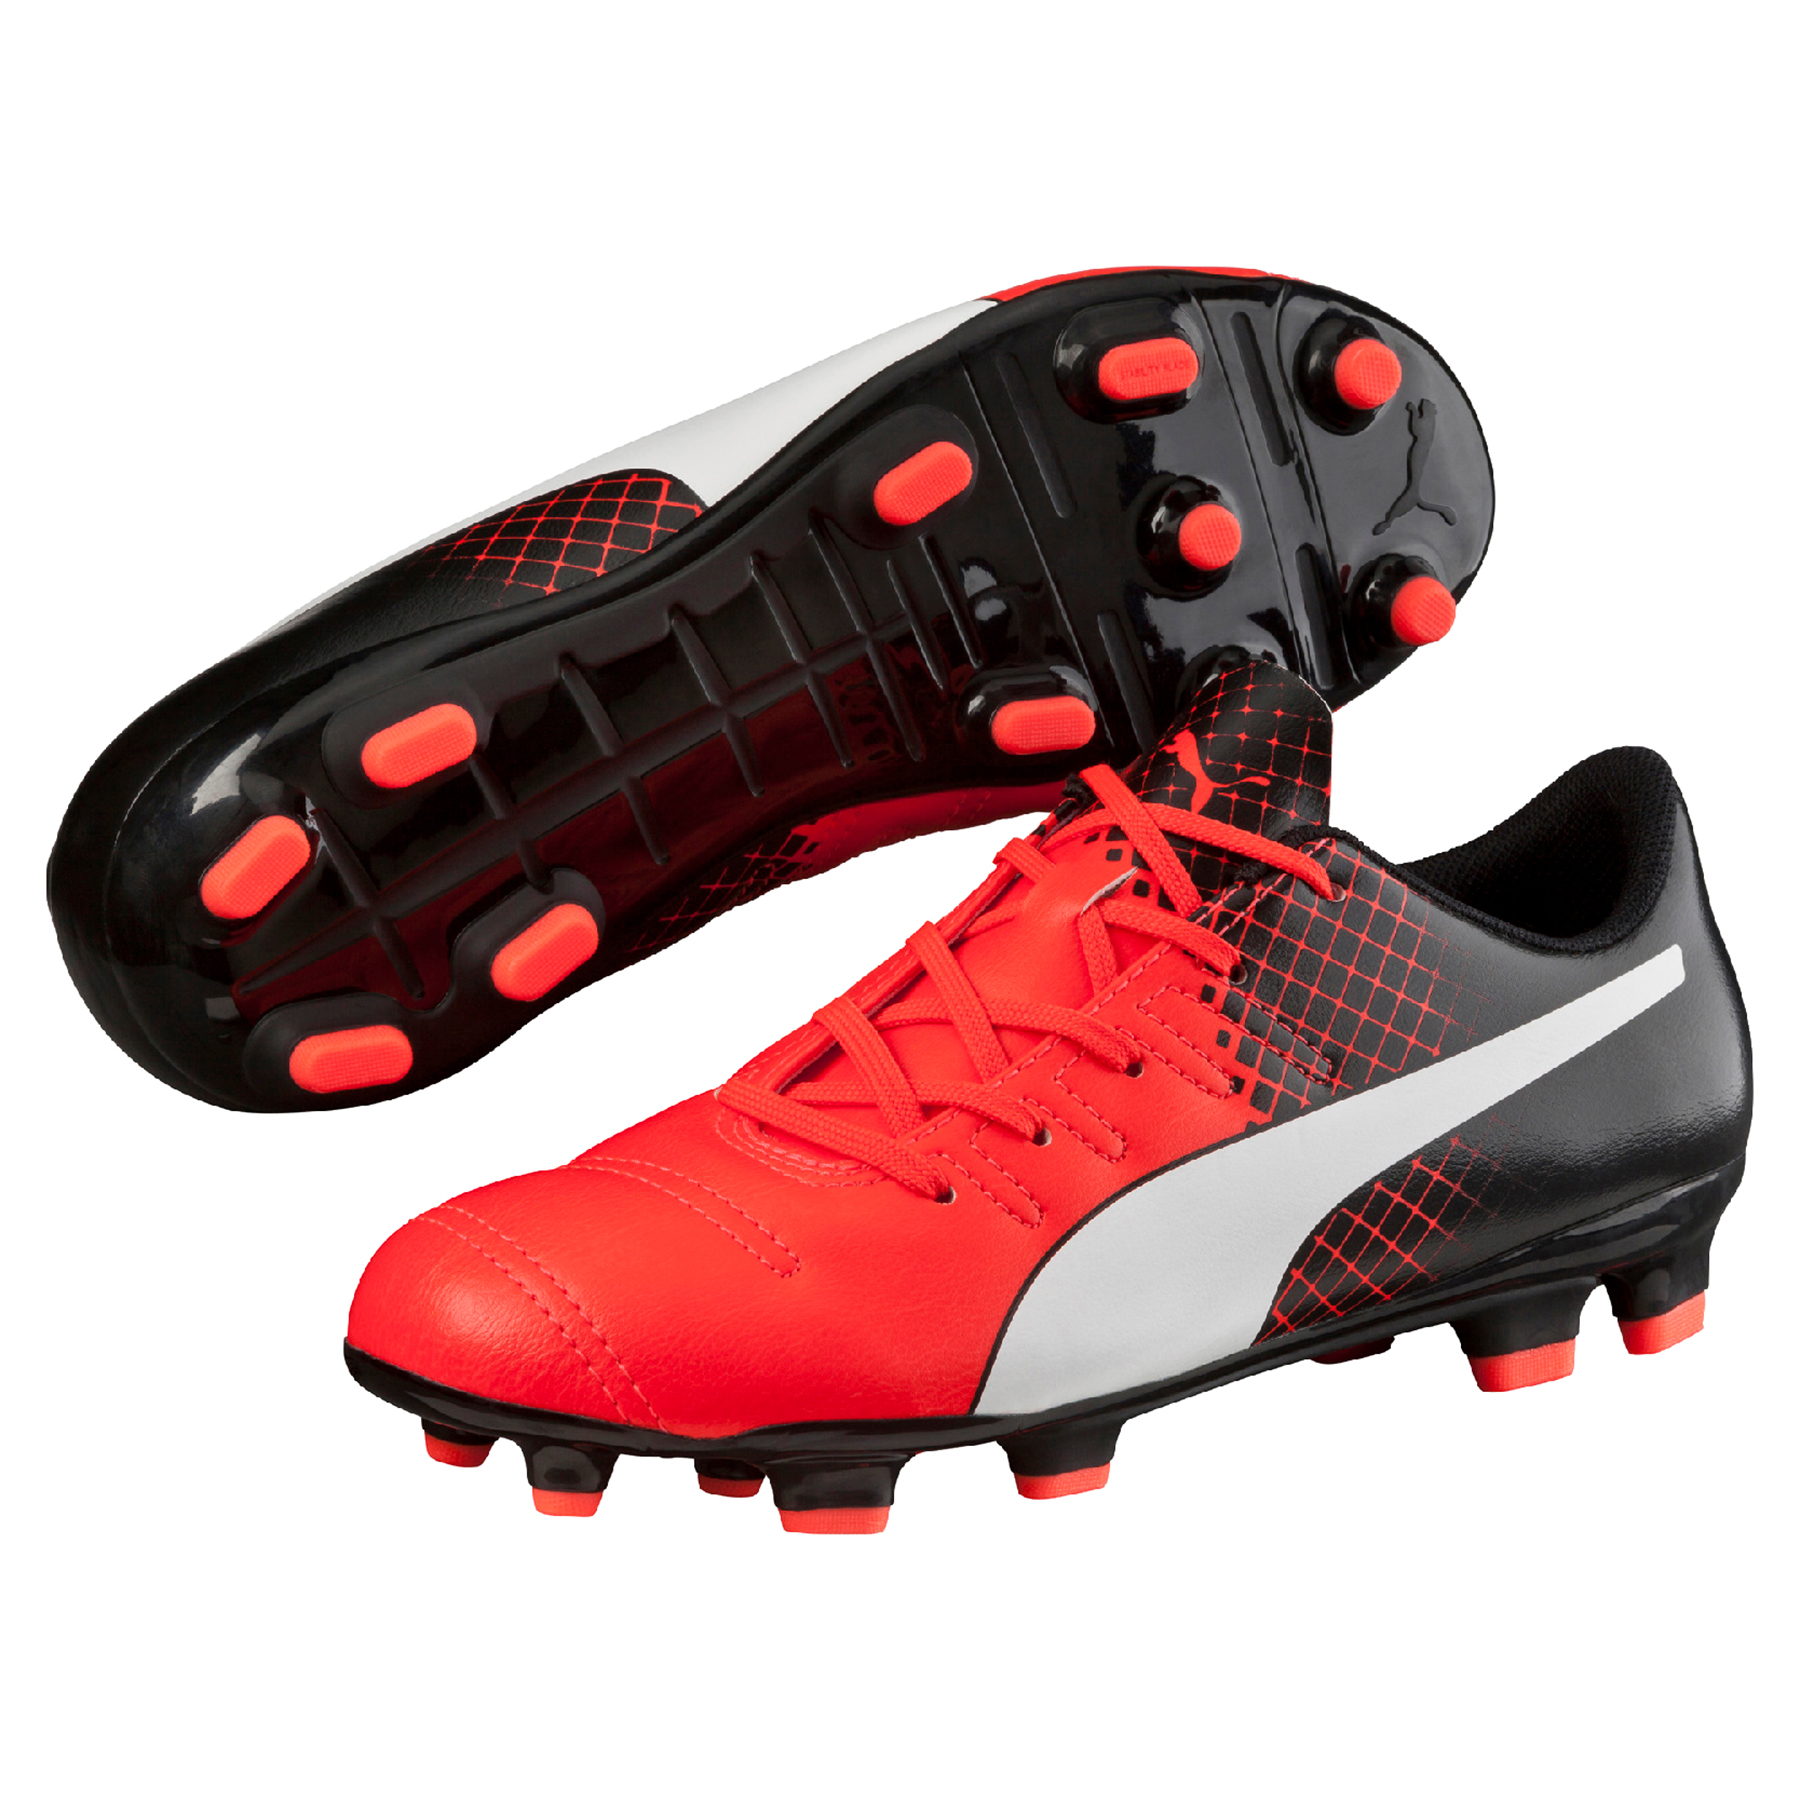 Puma evoPOWER 4.3 FG Red Blast/Puma White/Pu